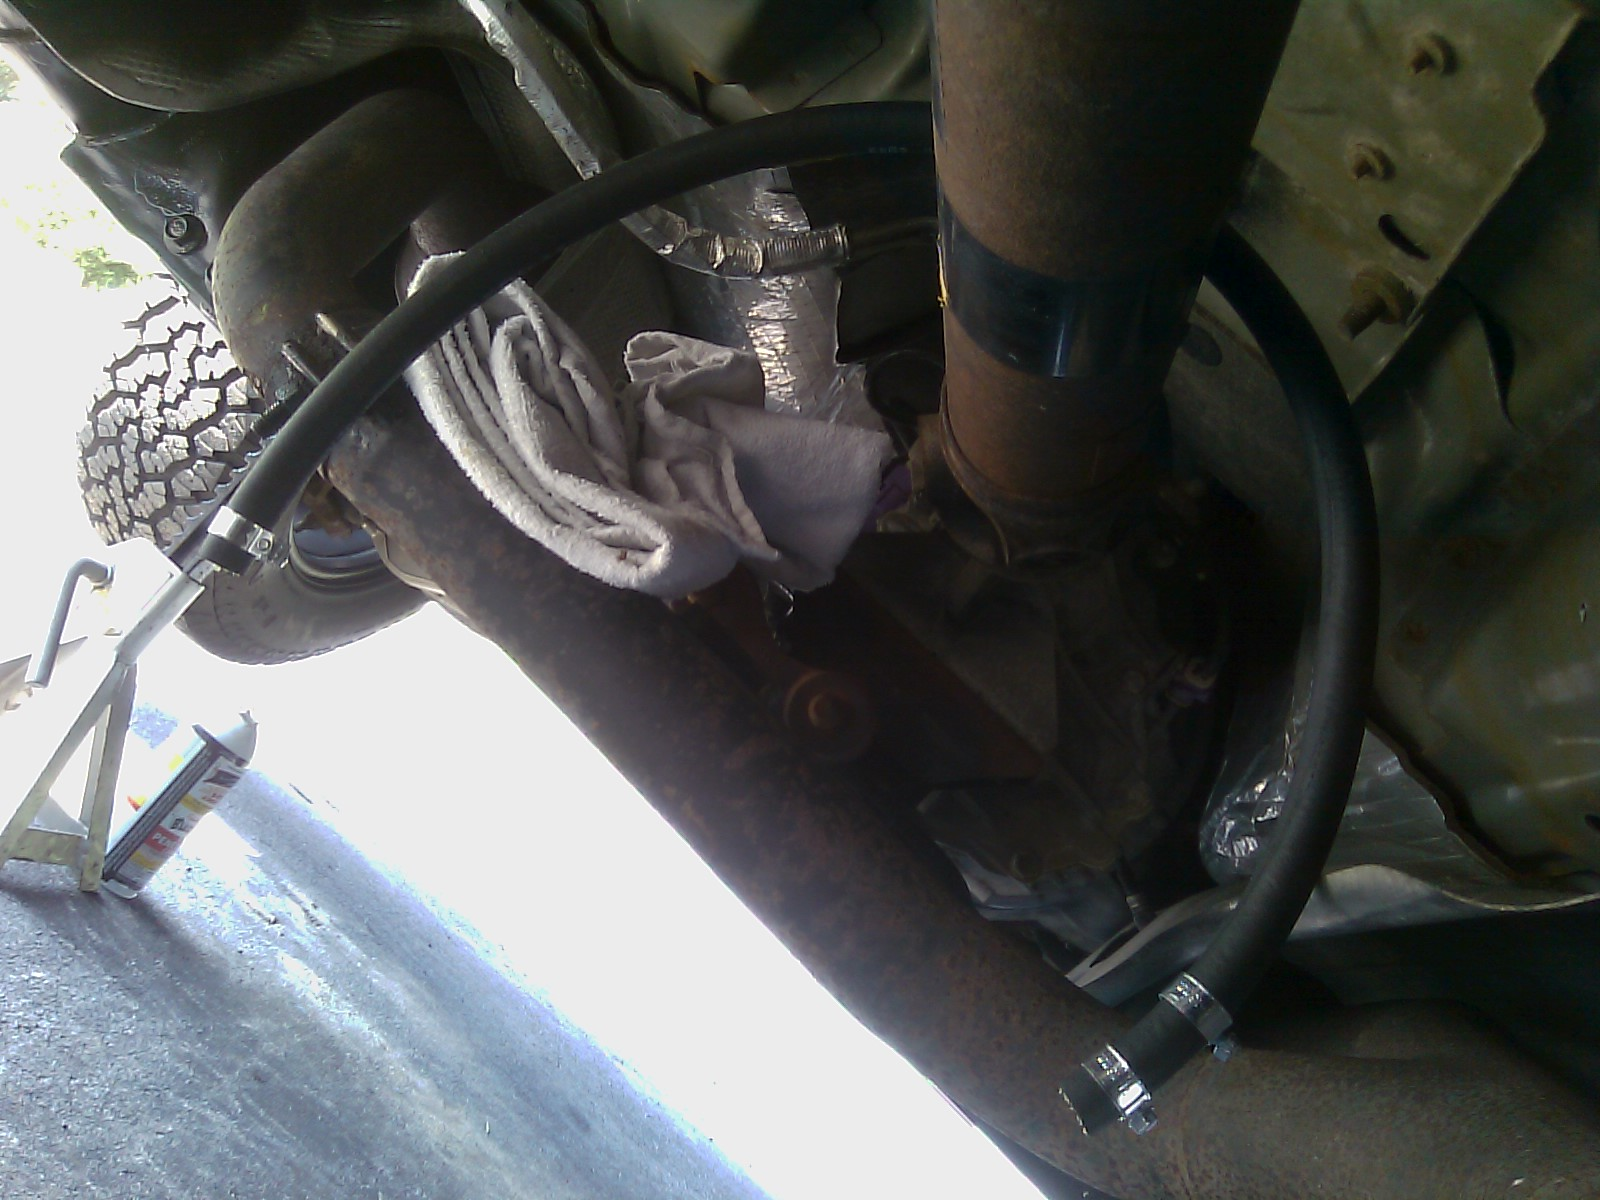 How To Fix A Damaged Fuel Line F150online Forums Filter On 2012 F250 Step 5 Slip The Hose Rail And Use Your Screw Driver Tighten Clamps Down They Should Be Tightened Little Past Hand